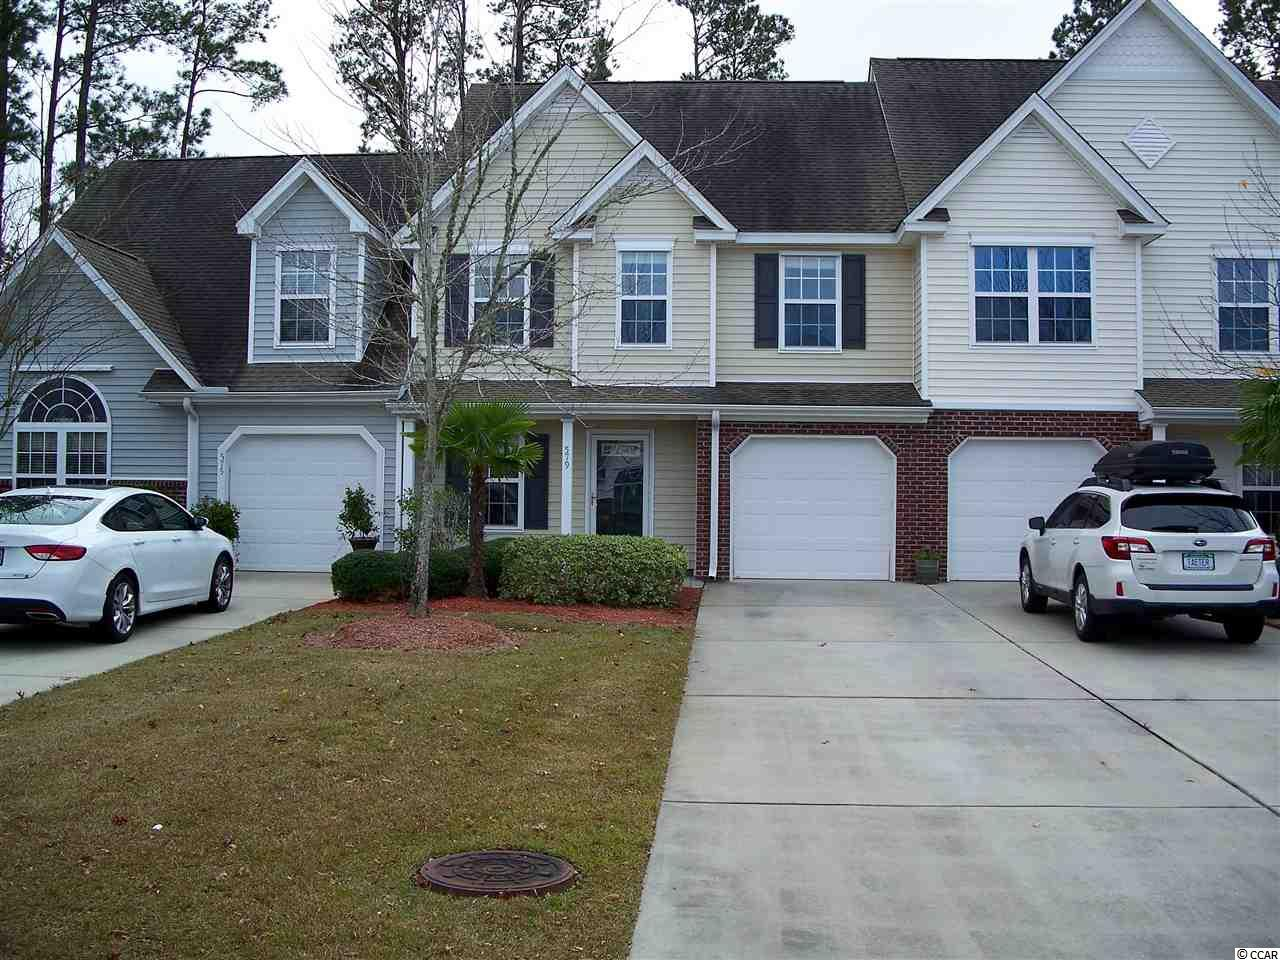 Gorgeous townhome in highly sought after riverfront community of Riverbend on the Waccamaw River.  Home has just been completely renovated with new flooring, new granite, new stainless steel appliances & more.  Listing Agent is part owner of home.  Carefree living lifestyle in a move in ready home.  A must see!